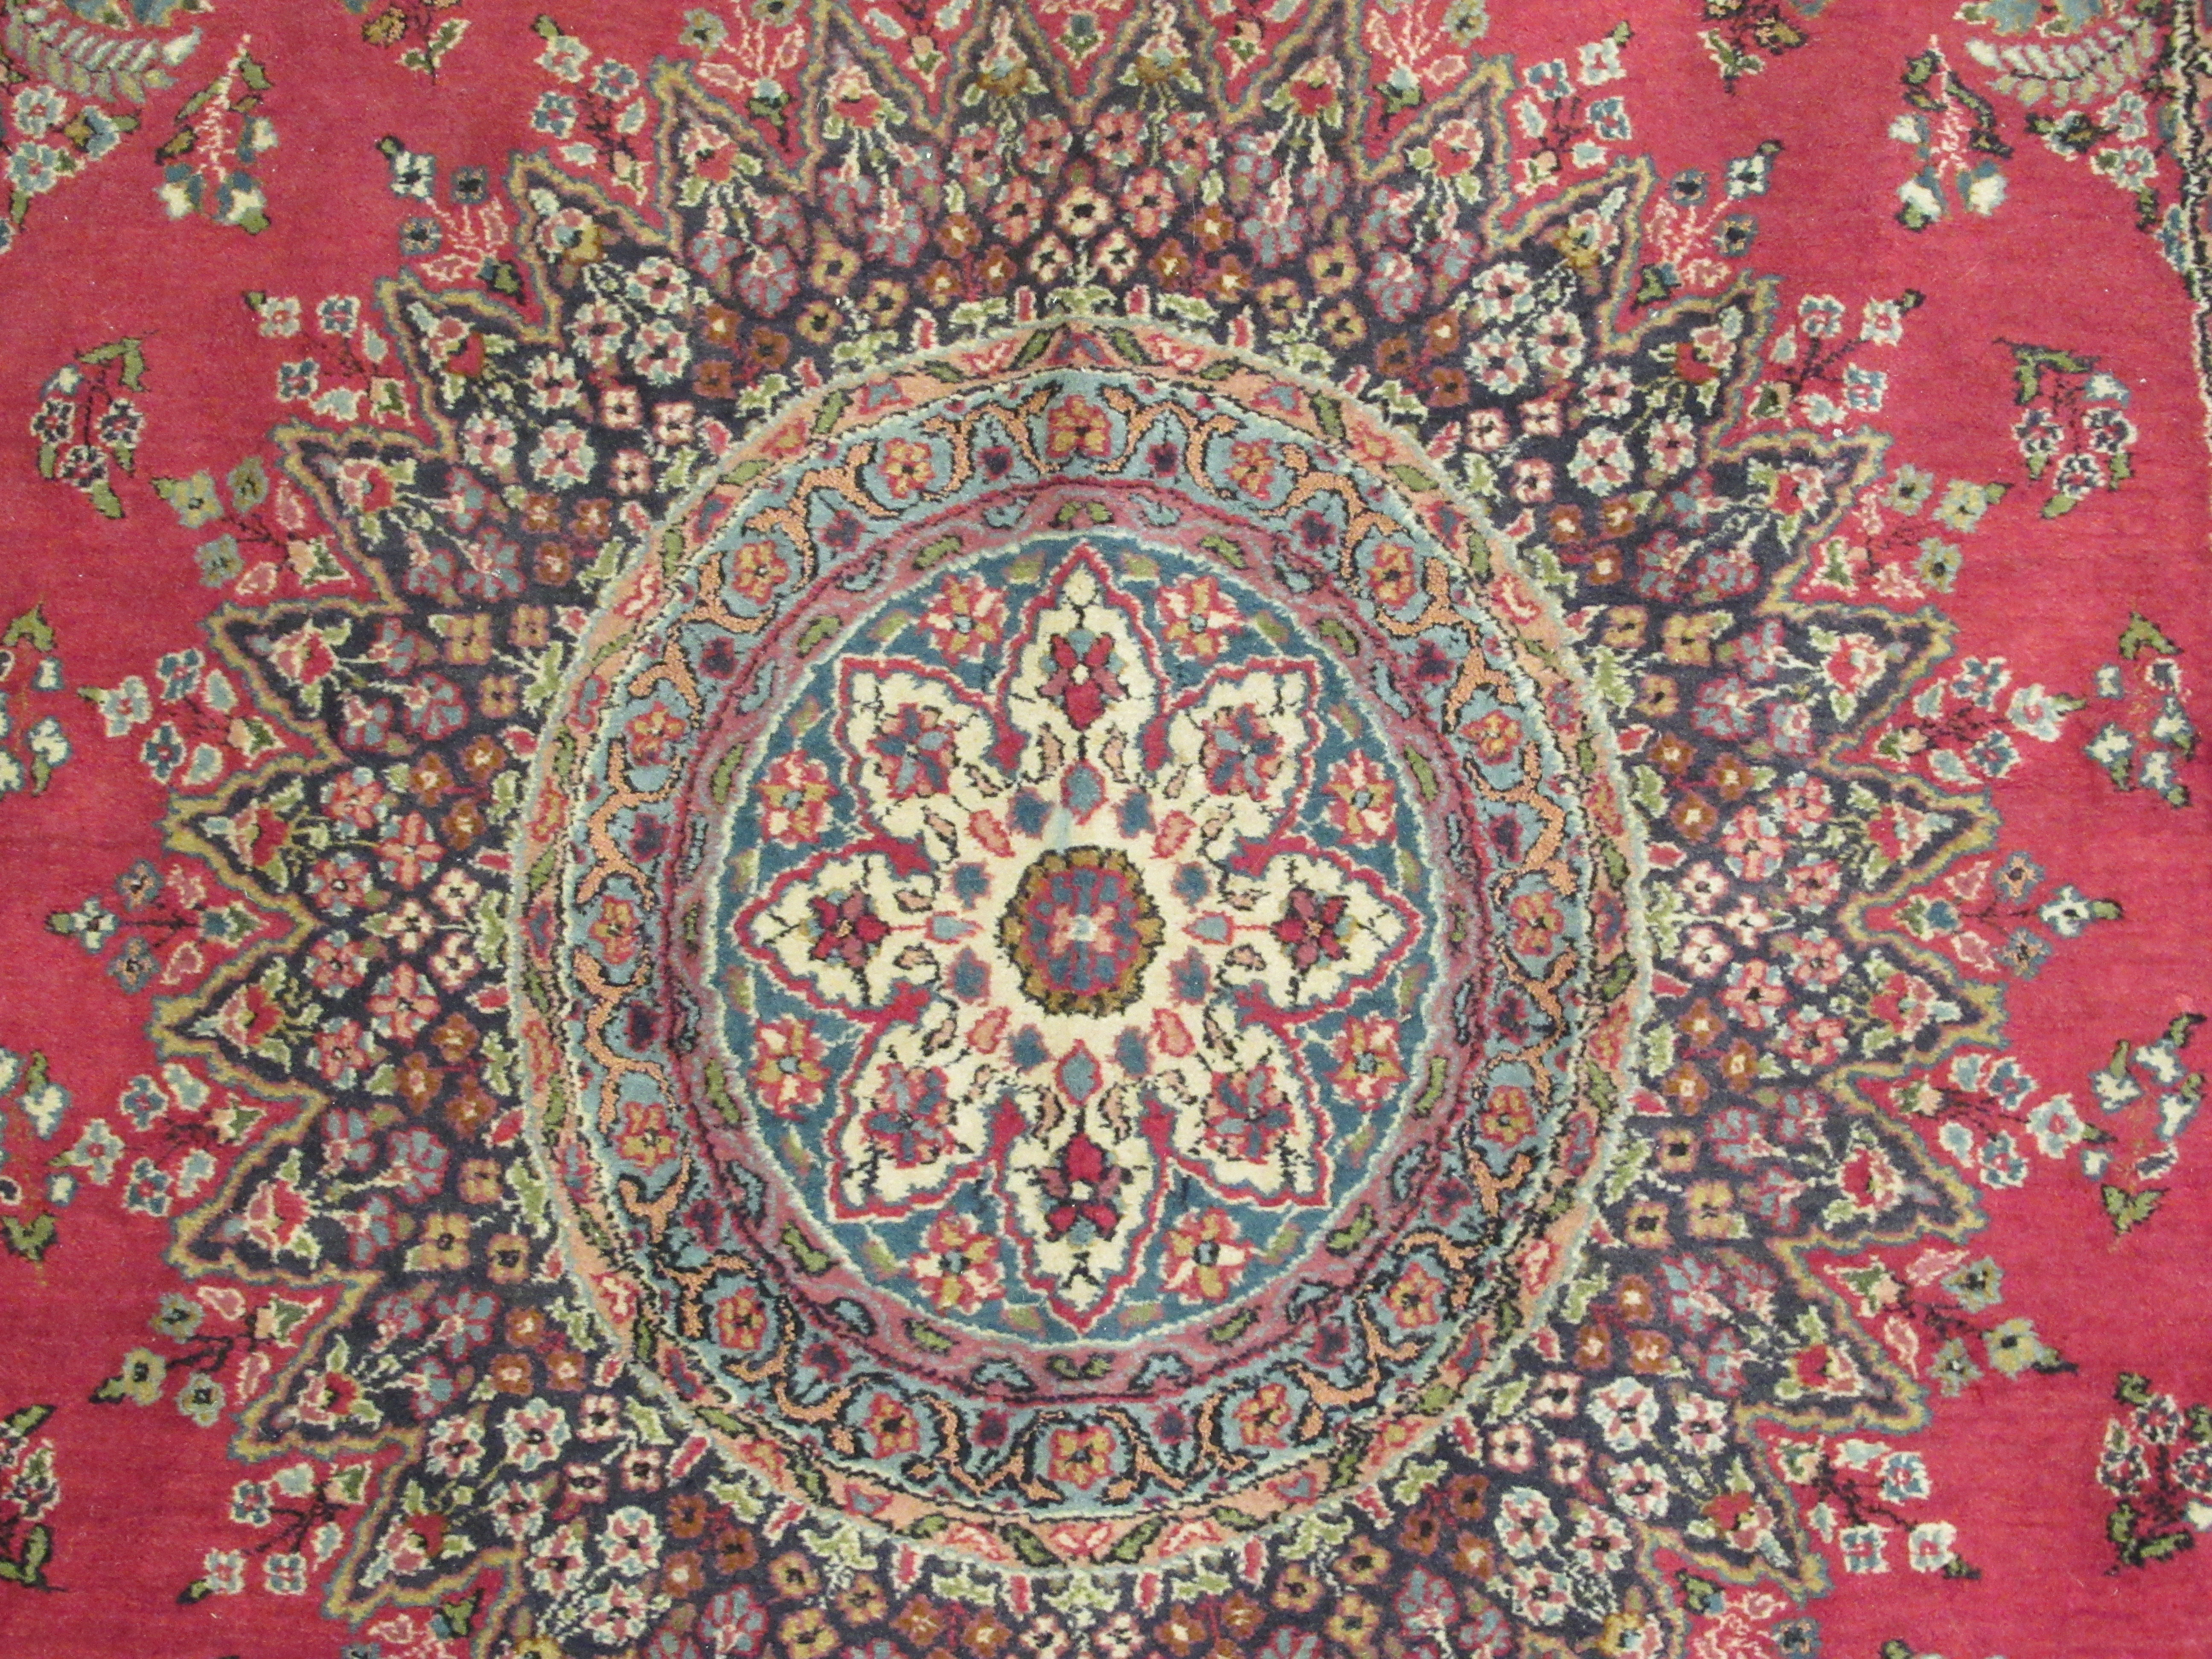 A Persian rug, decorated with a central starburst design medallion, bordered by floral designs, on a - Image 2 of 4